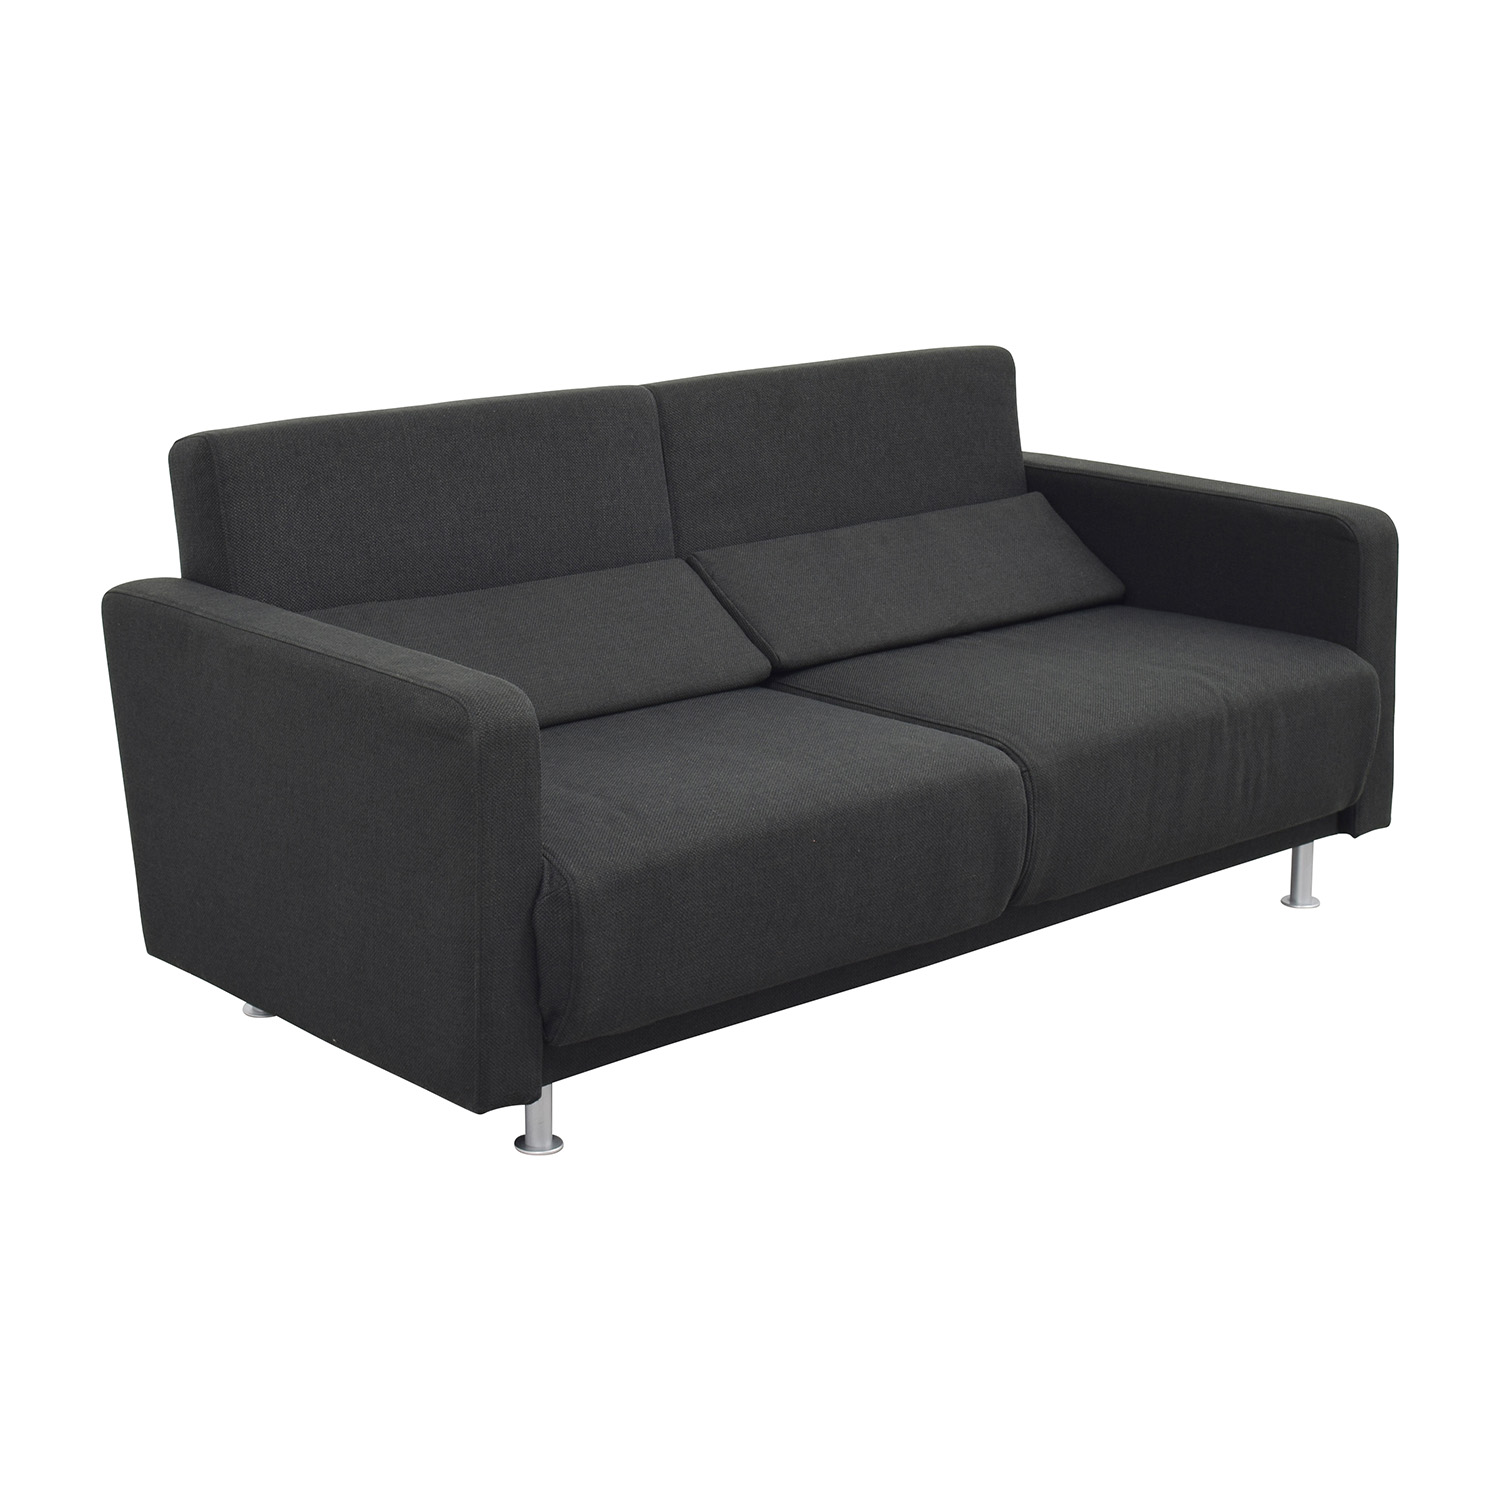 67 off boconcept boconcept melo black sofa bed sofas. Black Bedroom Furniture Sets. Home Design Ideas